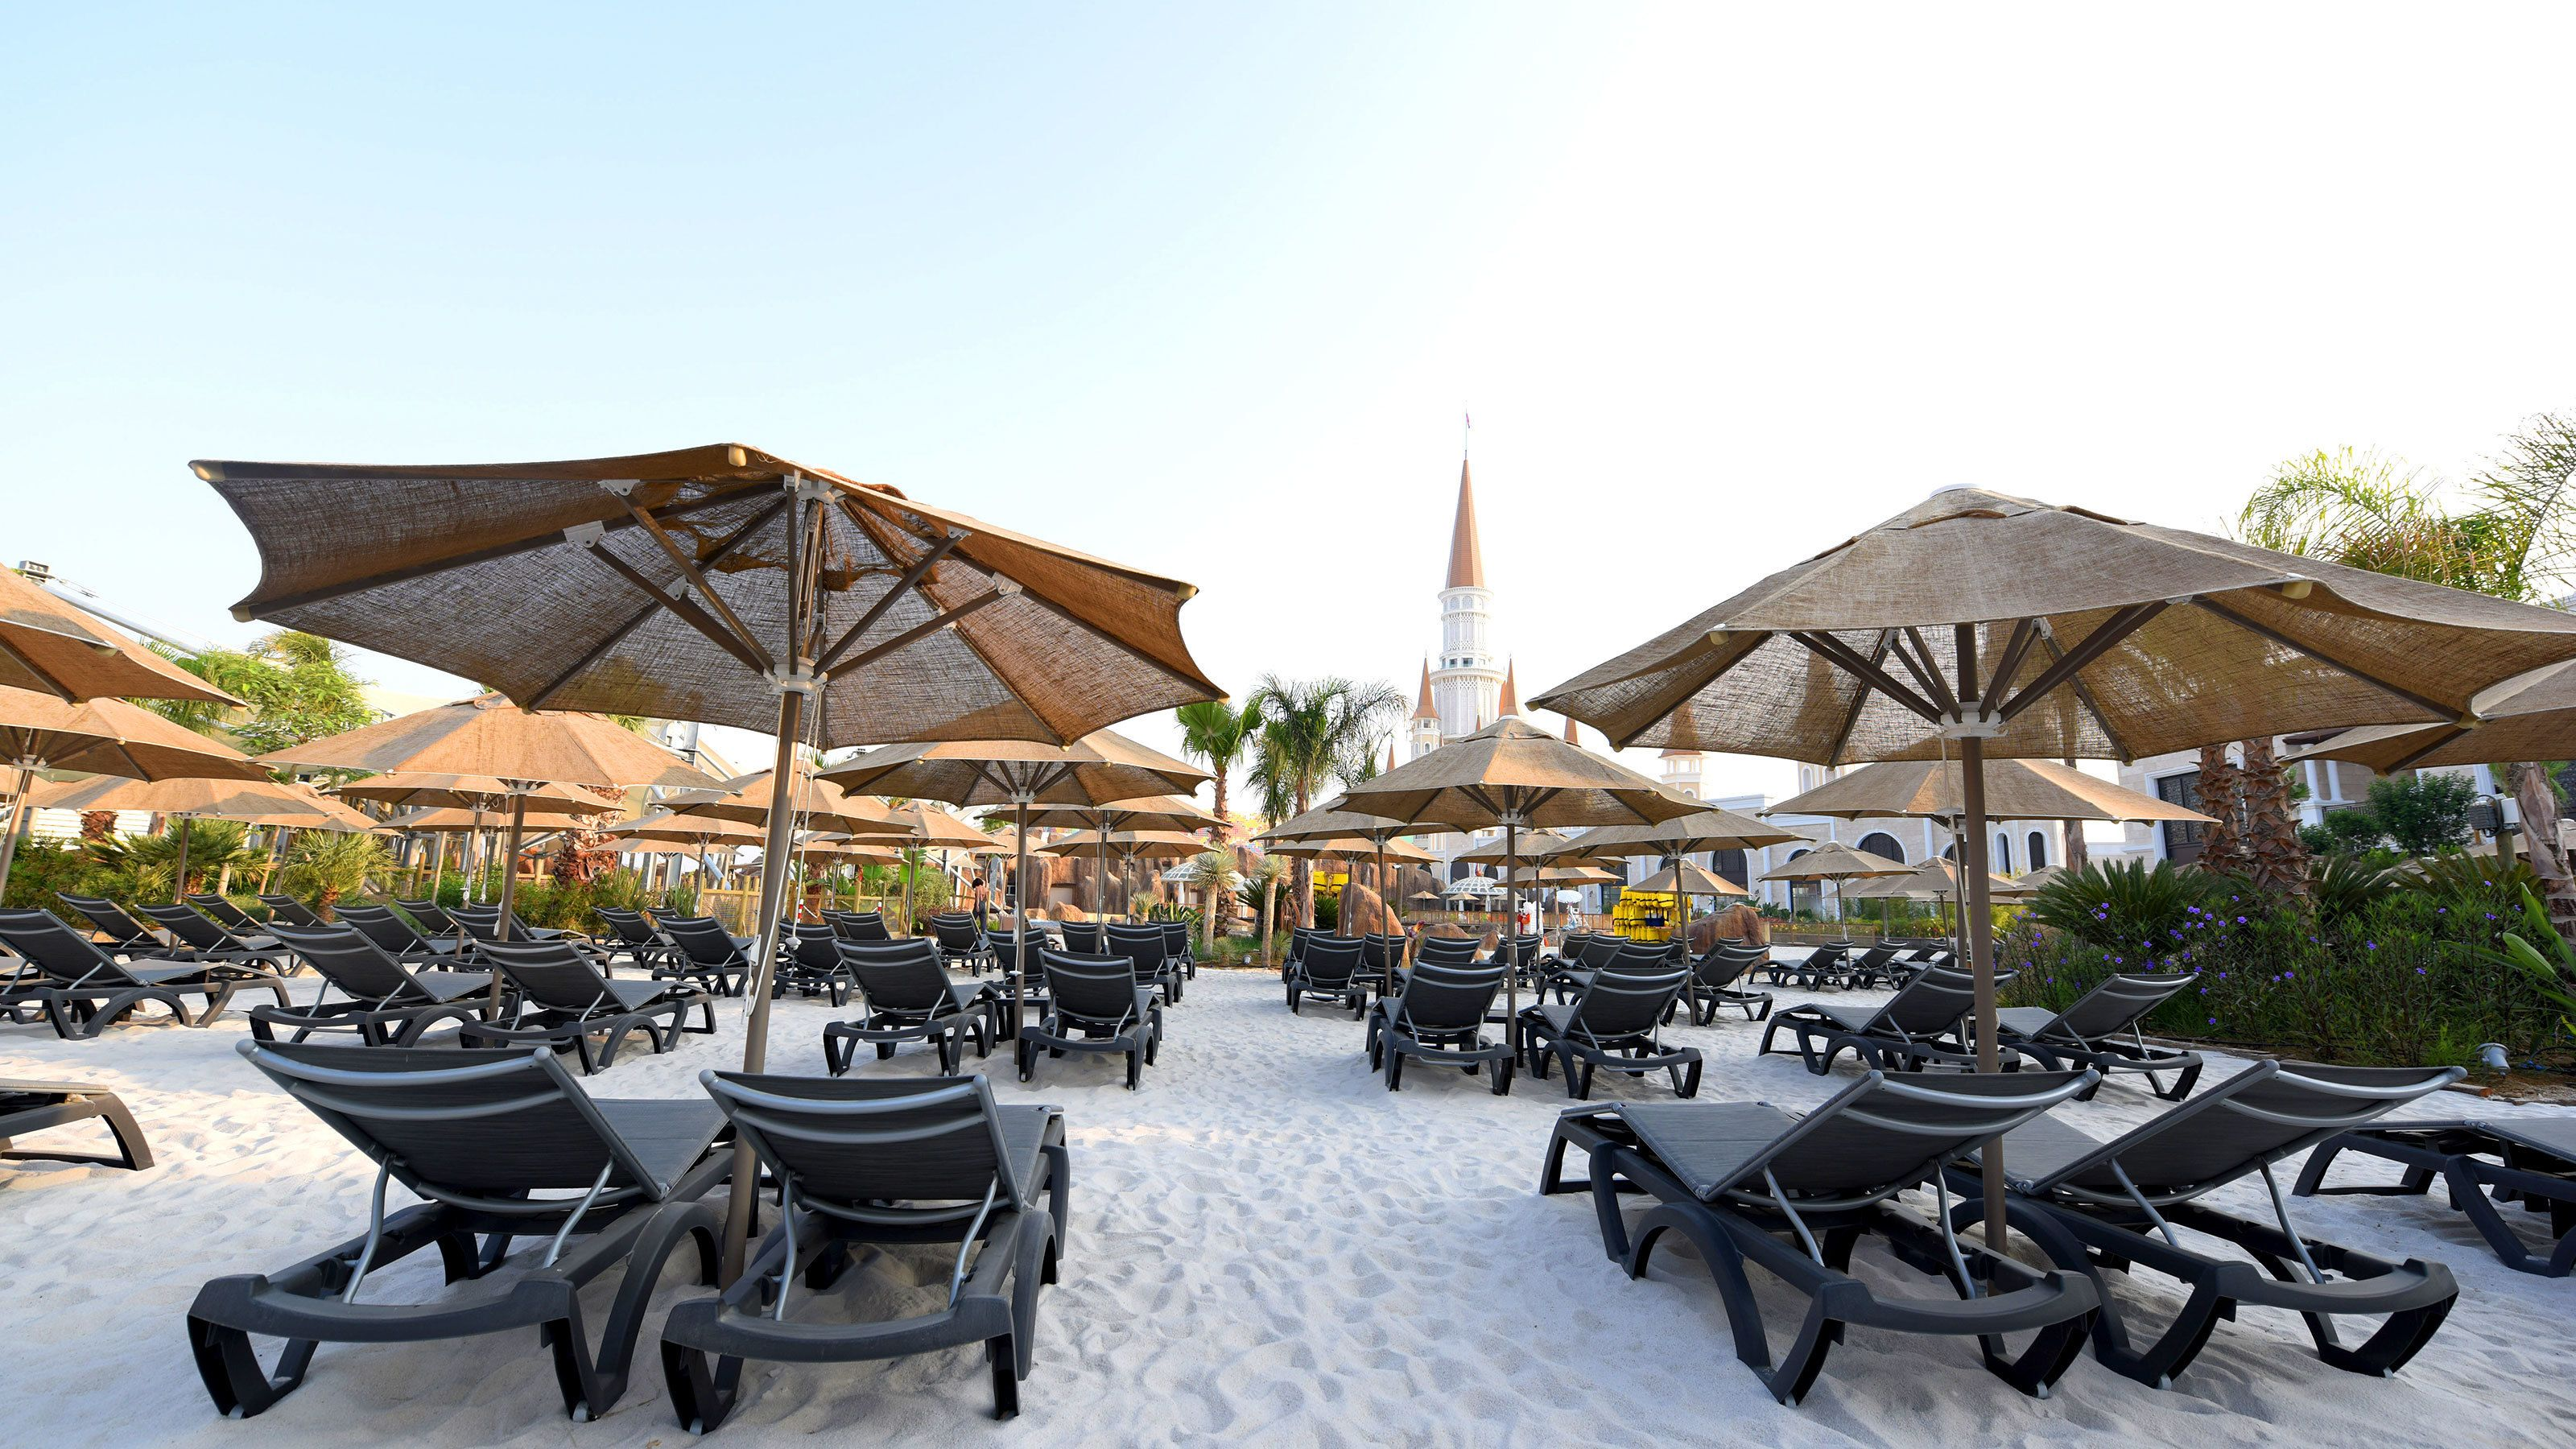 Lounge chairs on beach at Land of Legends theme park in Antalya